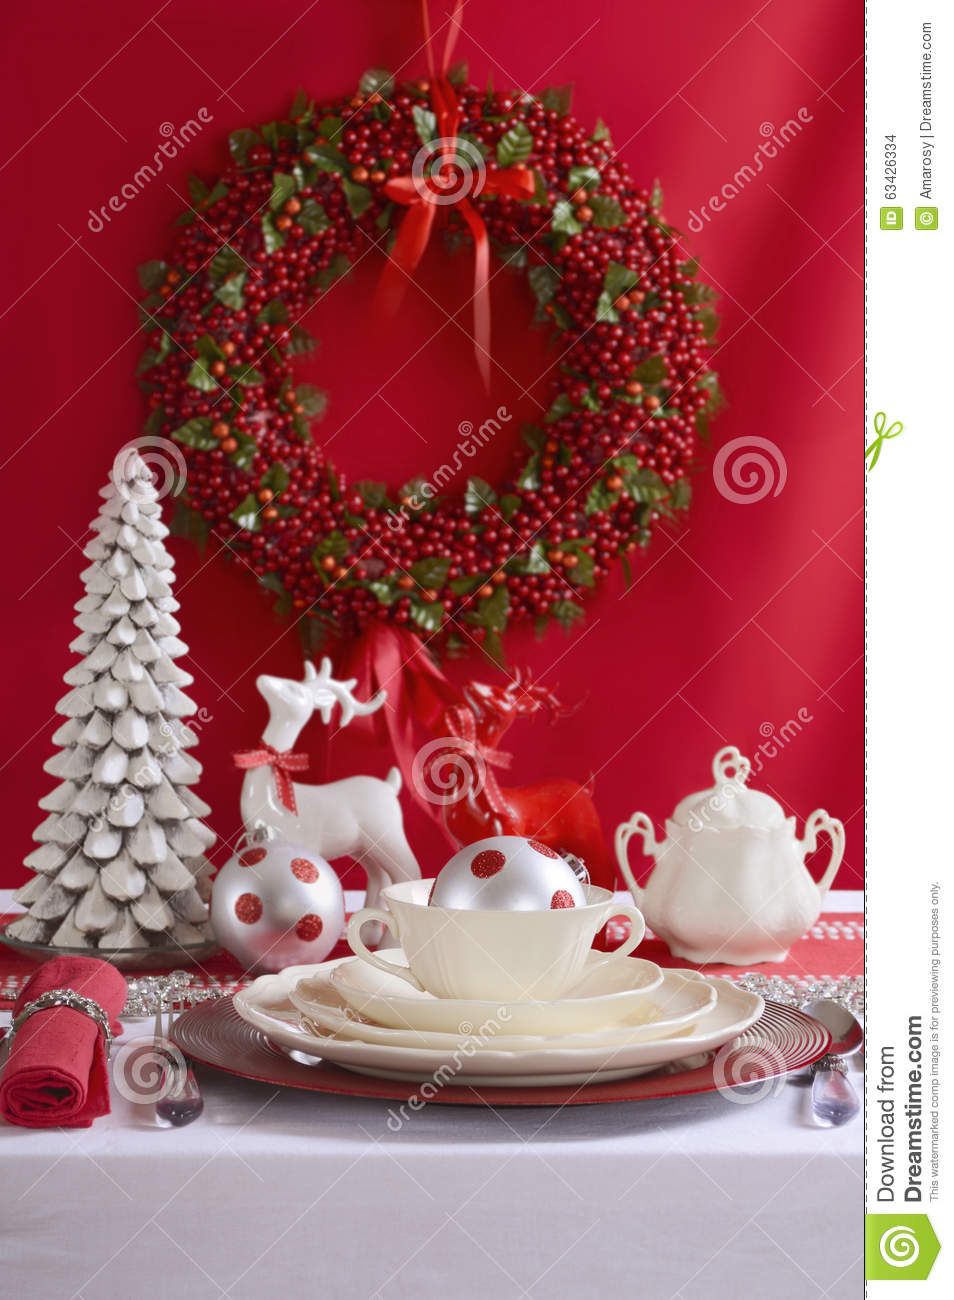 Red And White Christmas Table Setting. Stock Photo - Image: 63426334